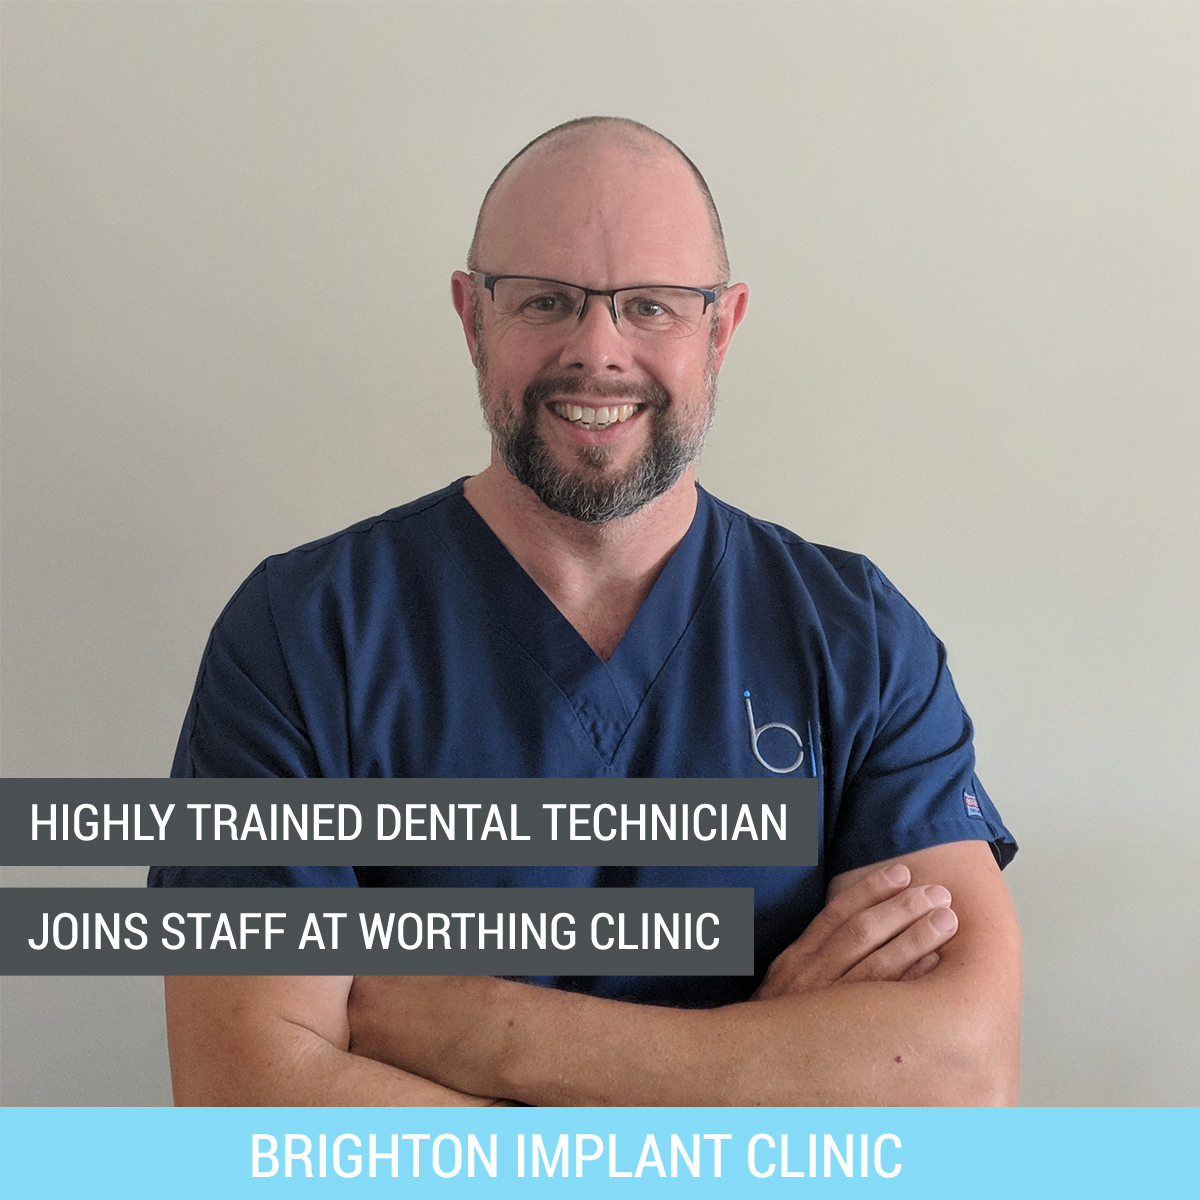 Kevin Campbell - Highly trained dental technician